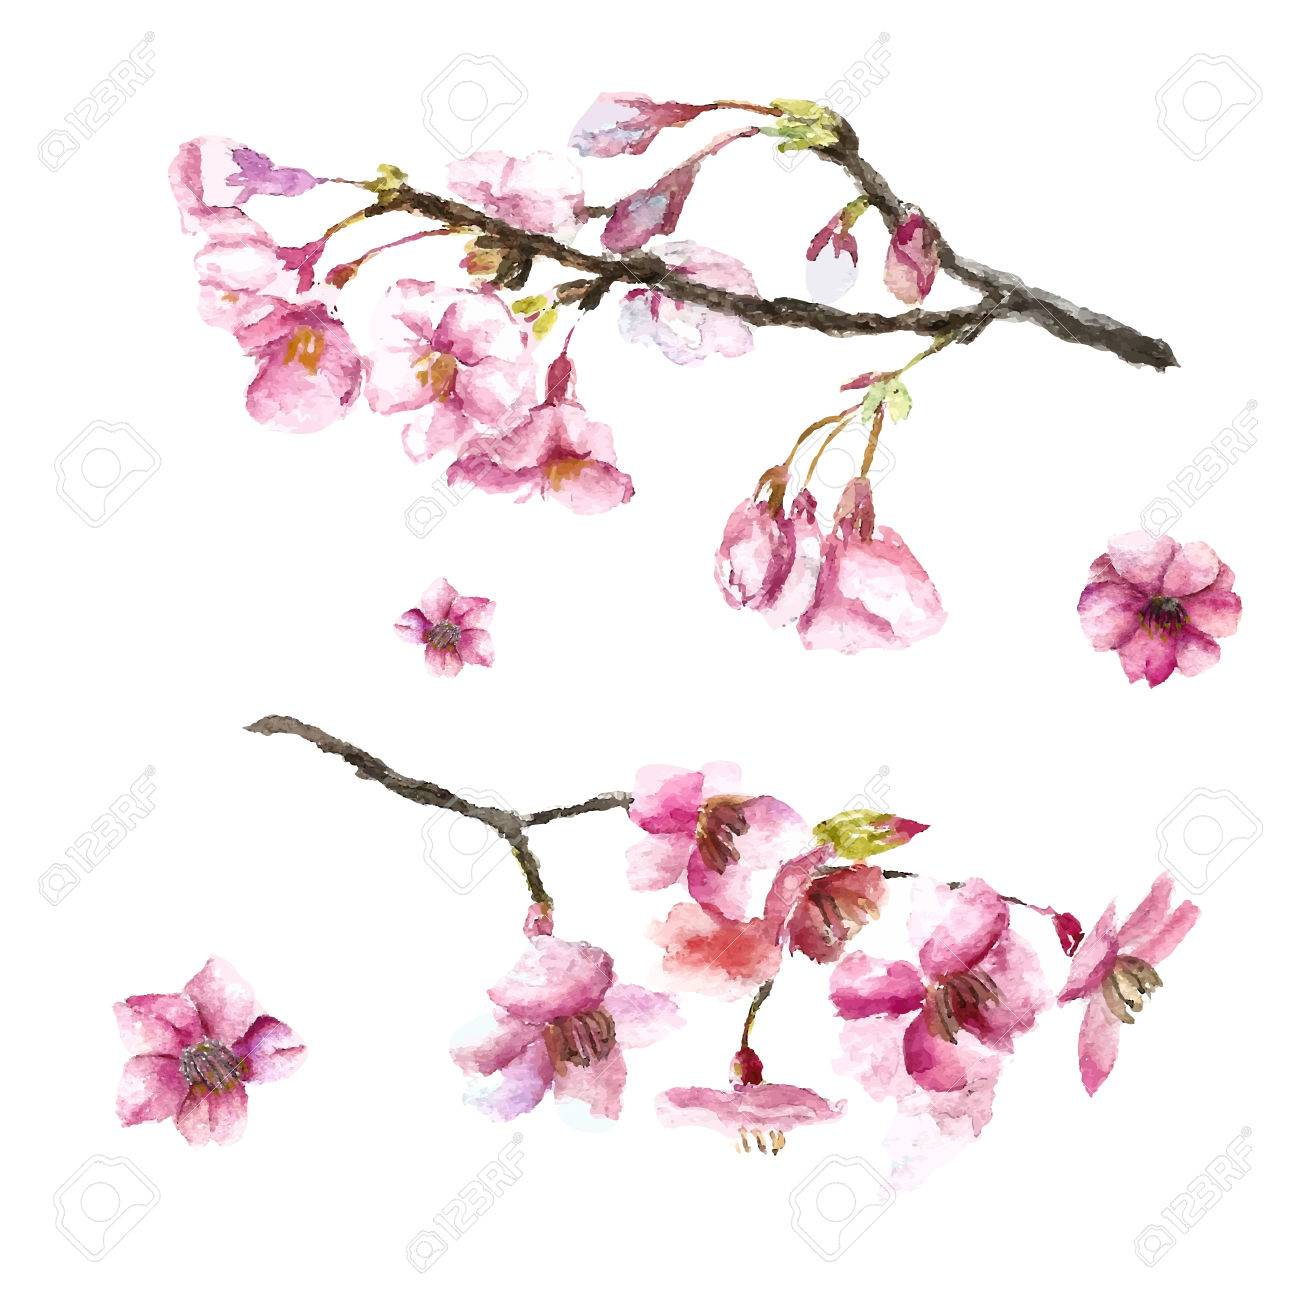 Watercolor Cherry Blossom Hand Draw Cherry Blossom Sakura Branch And Flowers Vector Illustrations Royalty Free Cliparts Vetores E Ilustracoes Stock Image 59266705